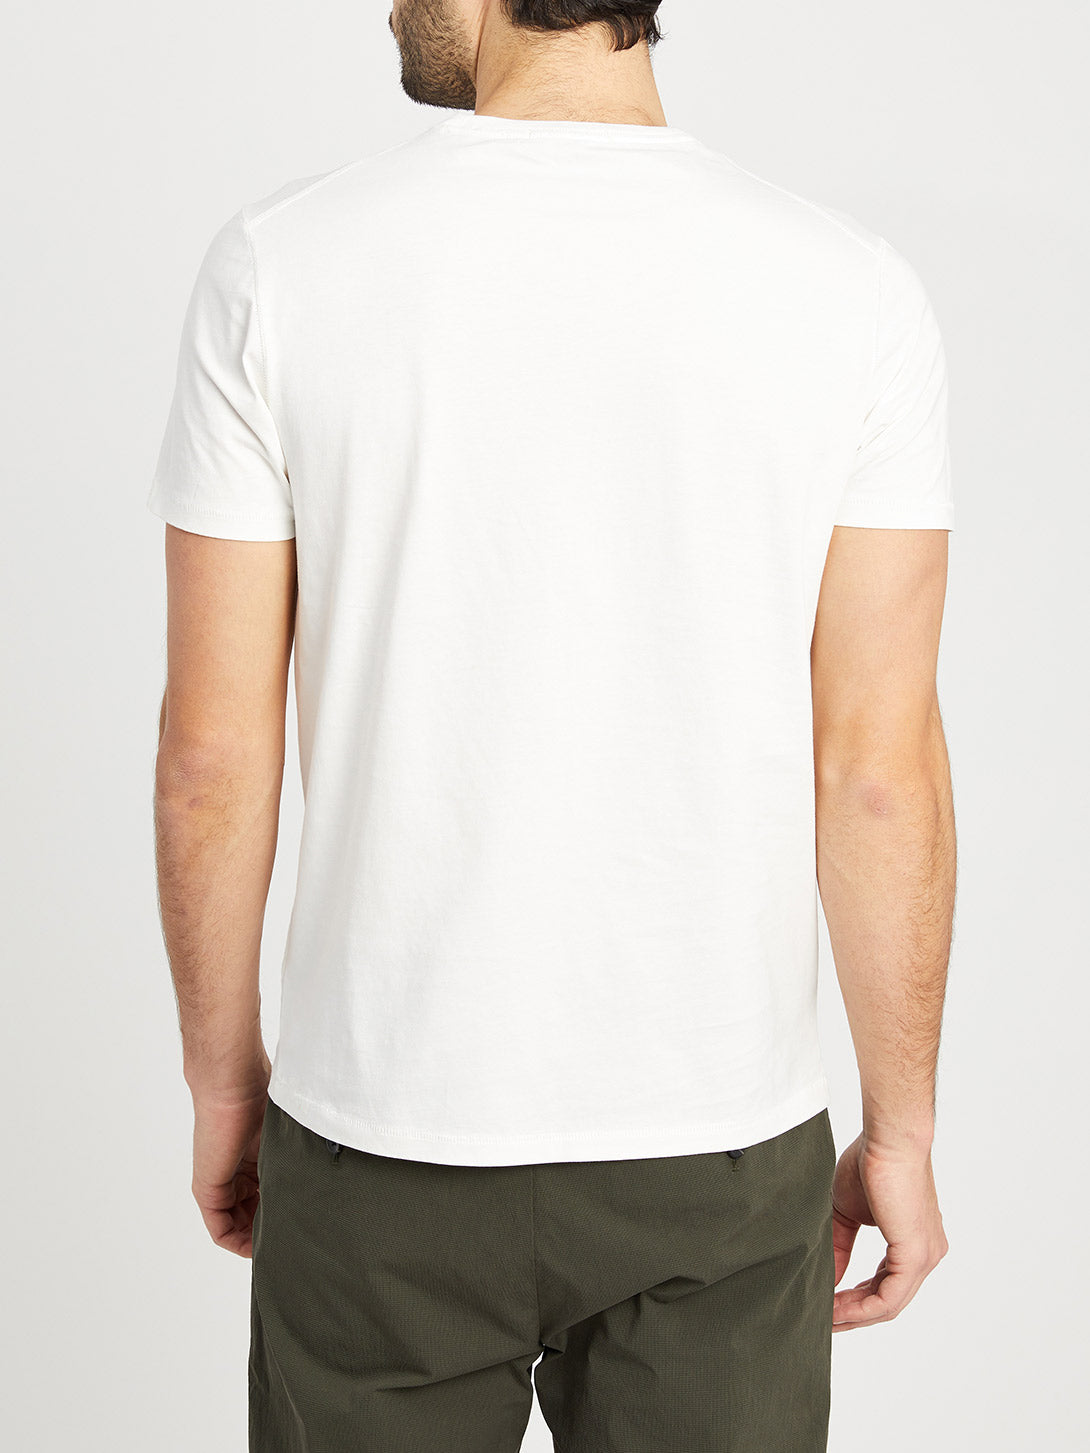 WHITE t shirts for men village crew neck tee ons clothing